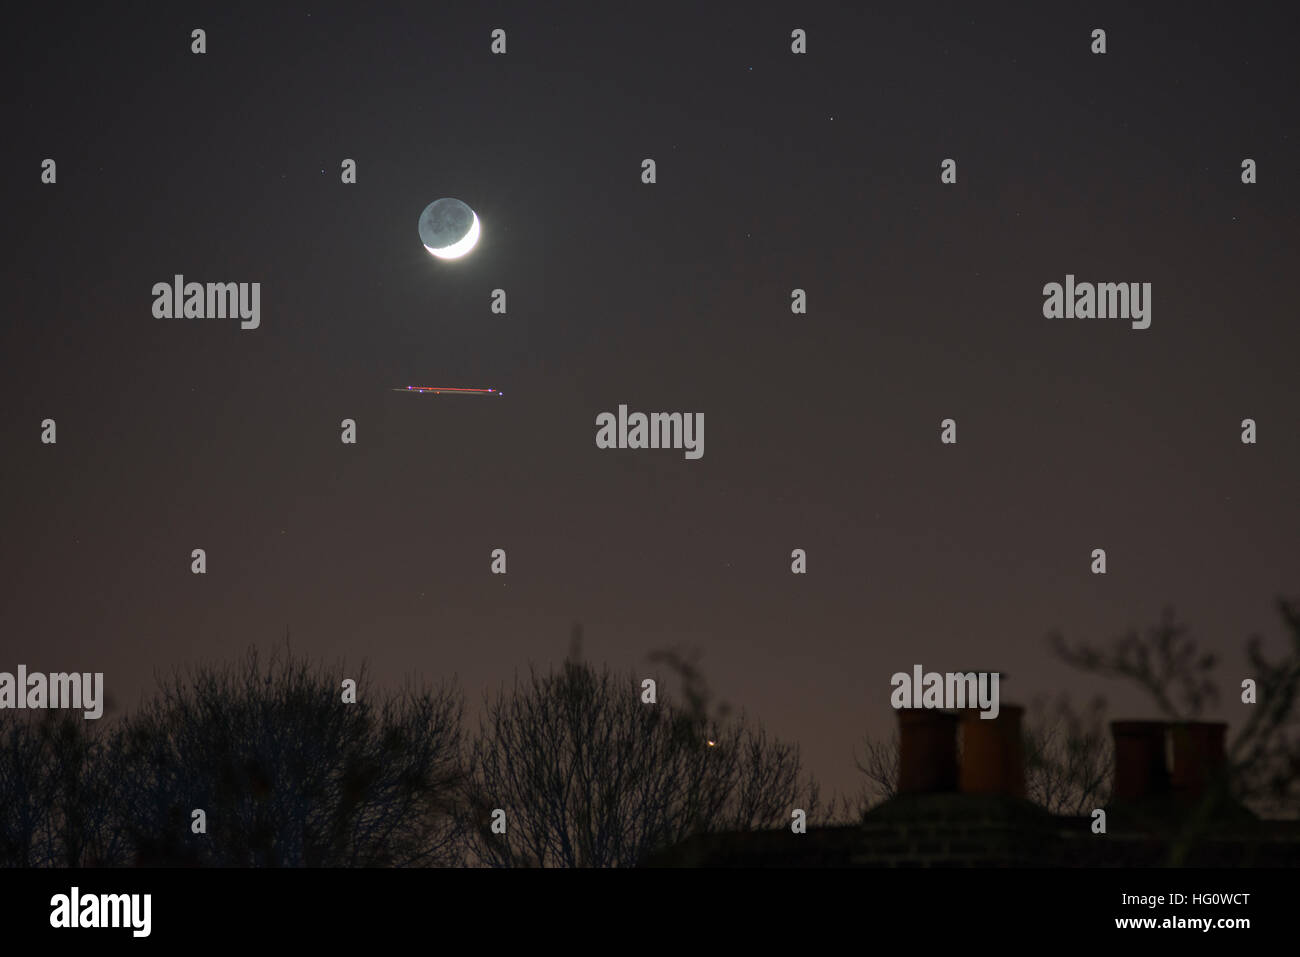 London, UK. 2nd January, 2017. Planet Venus shines brightly only 1.9 degrees south of the waxing crescent moon as - Stock Image